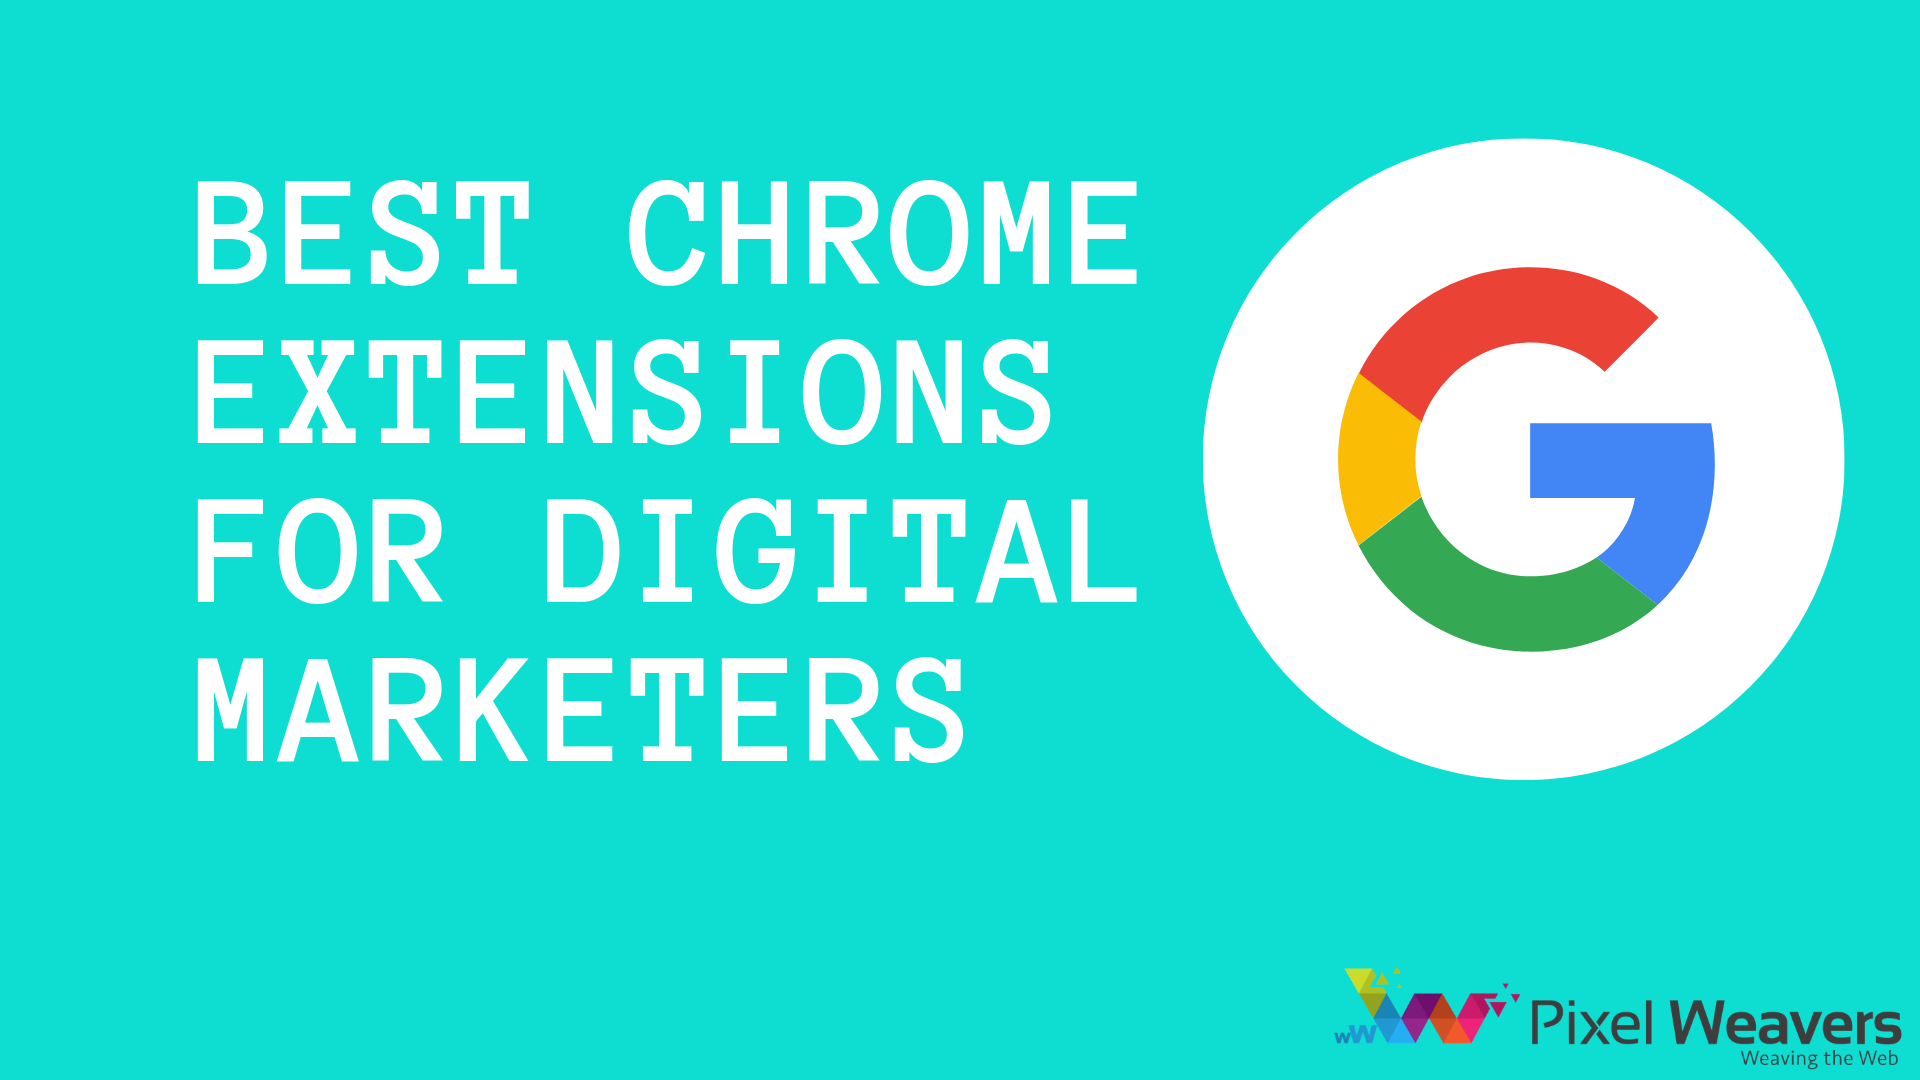 Best Chrome Extensions for Digital Marketers in 2019